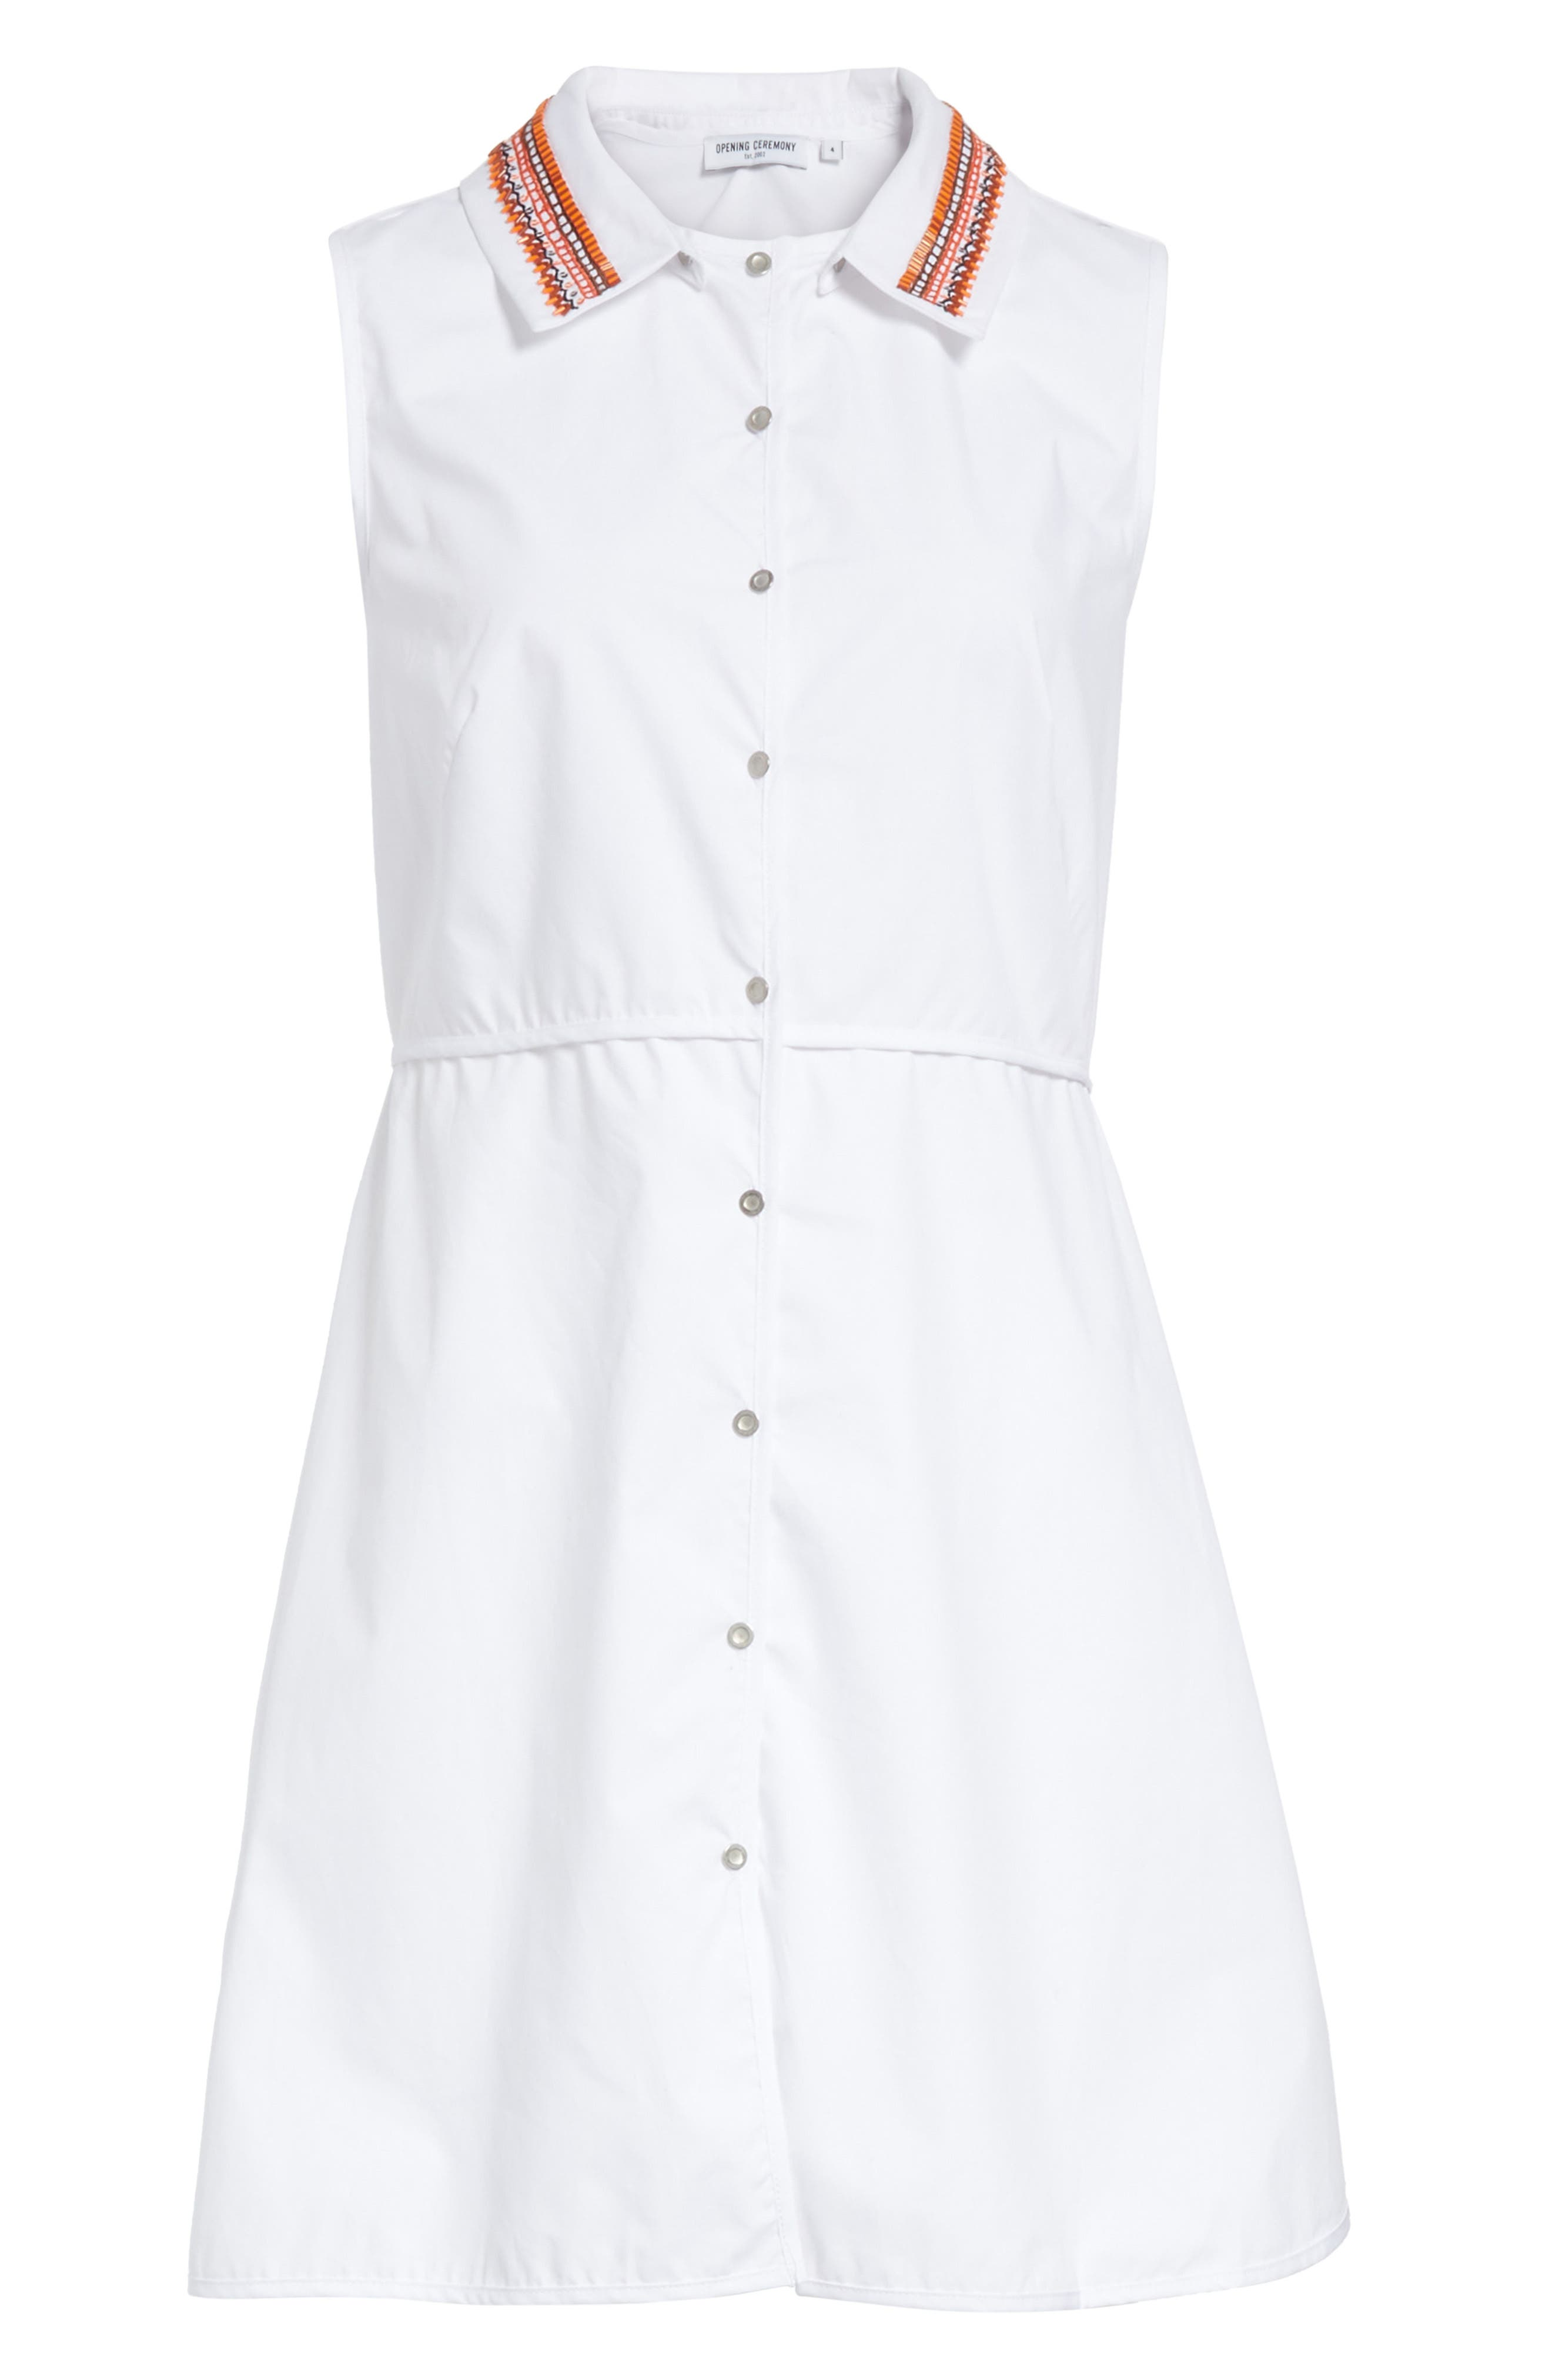 Transformer Poplin Dress with Detachable Embroidered Collar,                             Alternate thumbnail 6, color,                             100